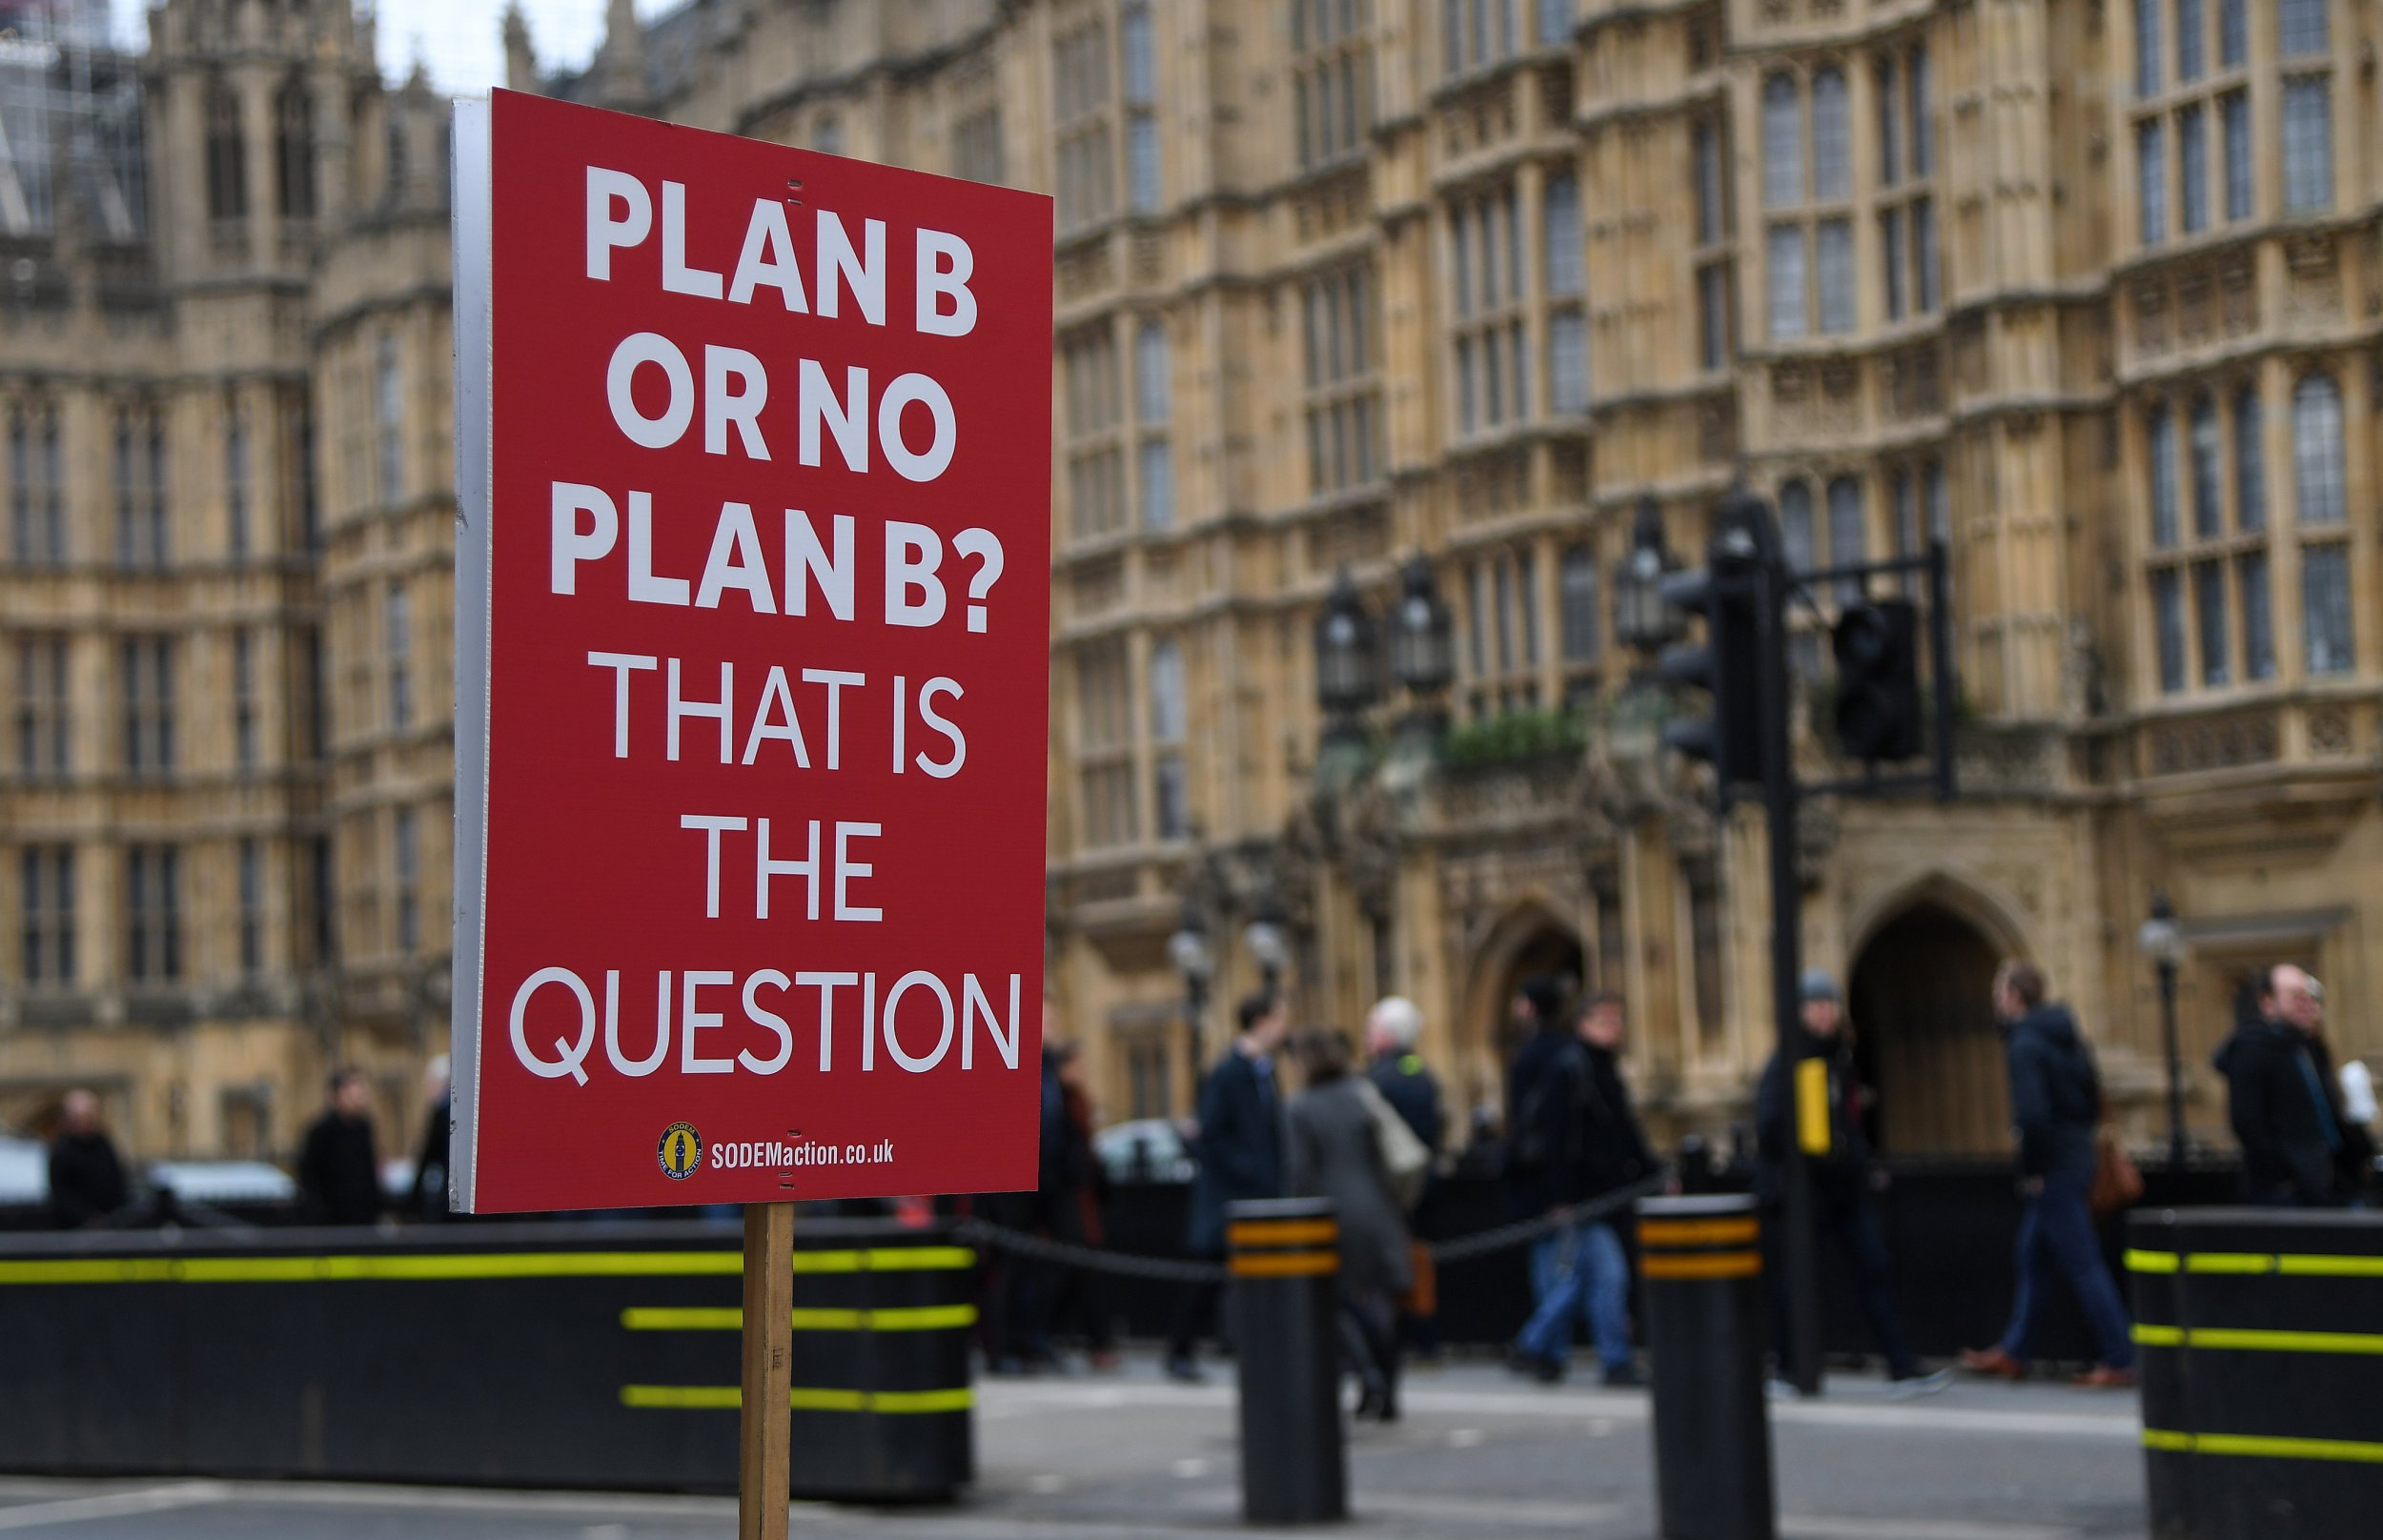 epa07312258 A pro EU placard outside parliament in London, Britain, 23 January 2019. British Prime Minister Theresa May has presented her Plan B for Brexit to parliament. and Parliamentarians will vote on her Brexit deal on 29 January 2019. EPA/ANDY RAIN